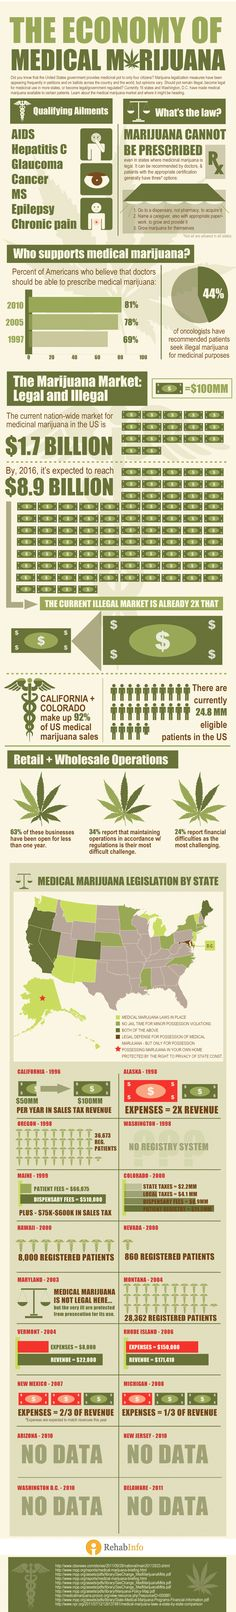 The Economy of Medical Marijuana, from RehabInfo.net, via TokeOfTheTown.com